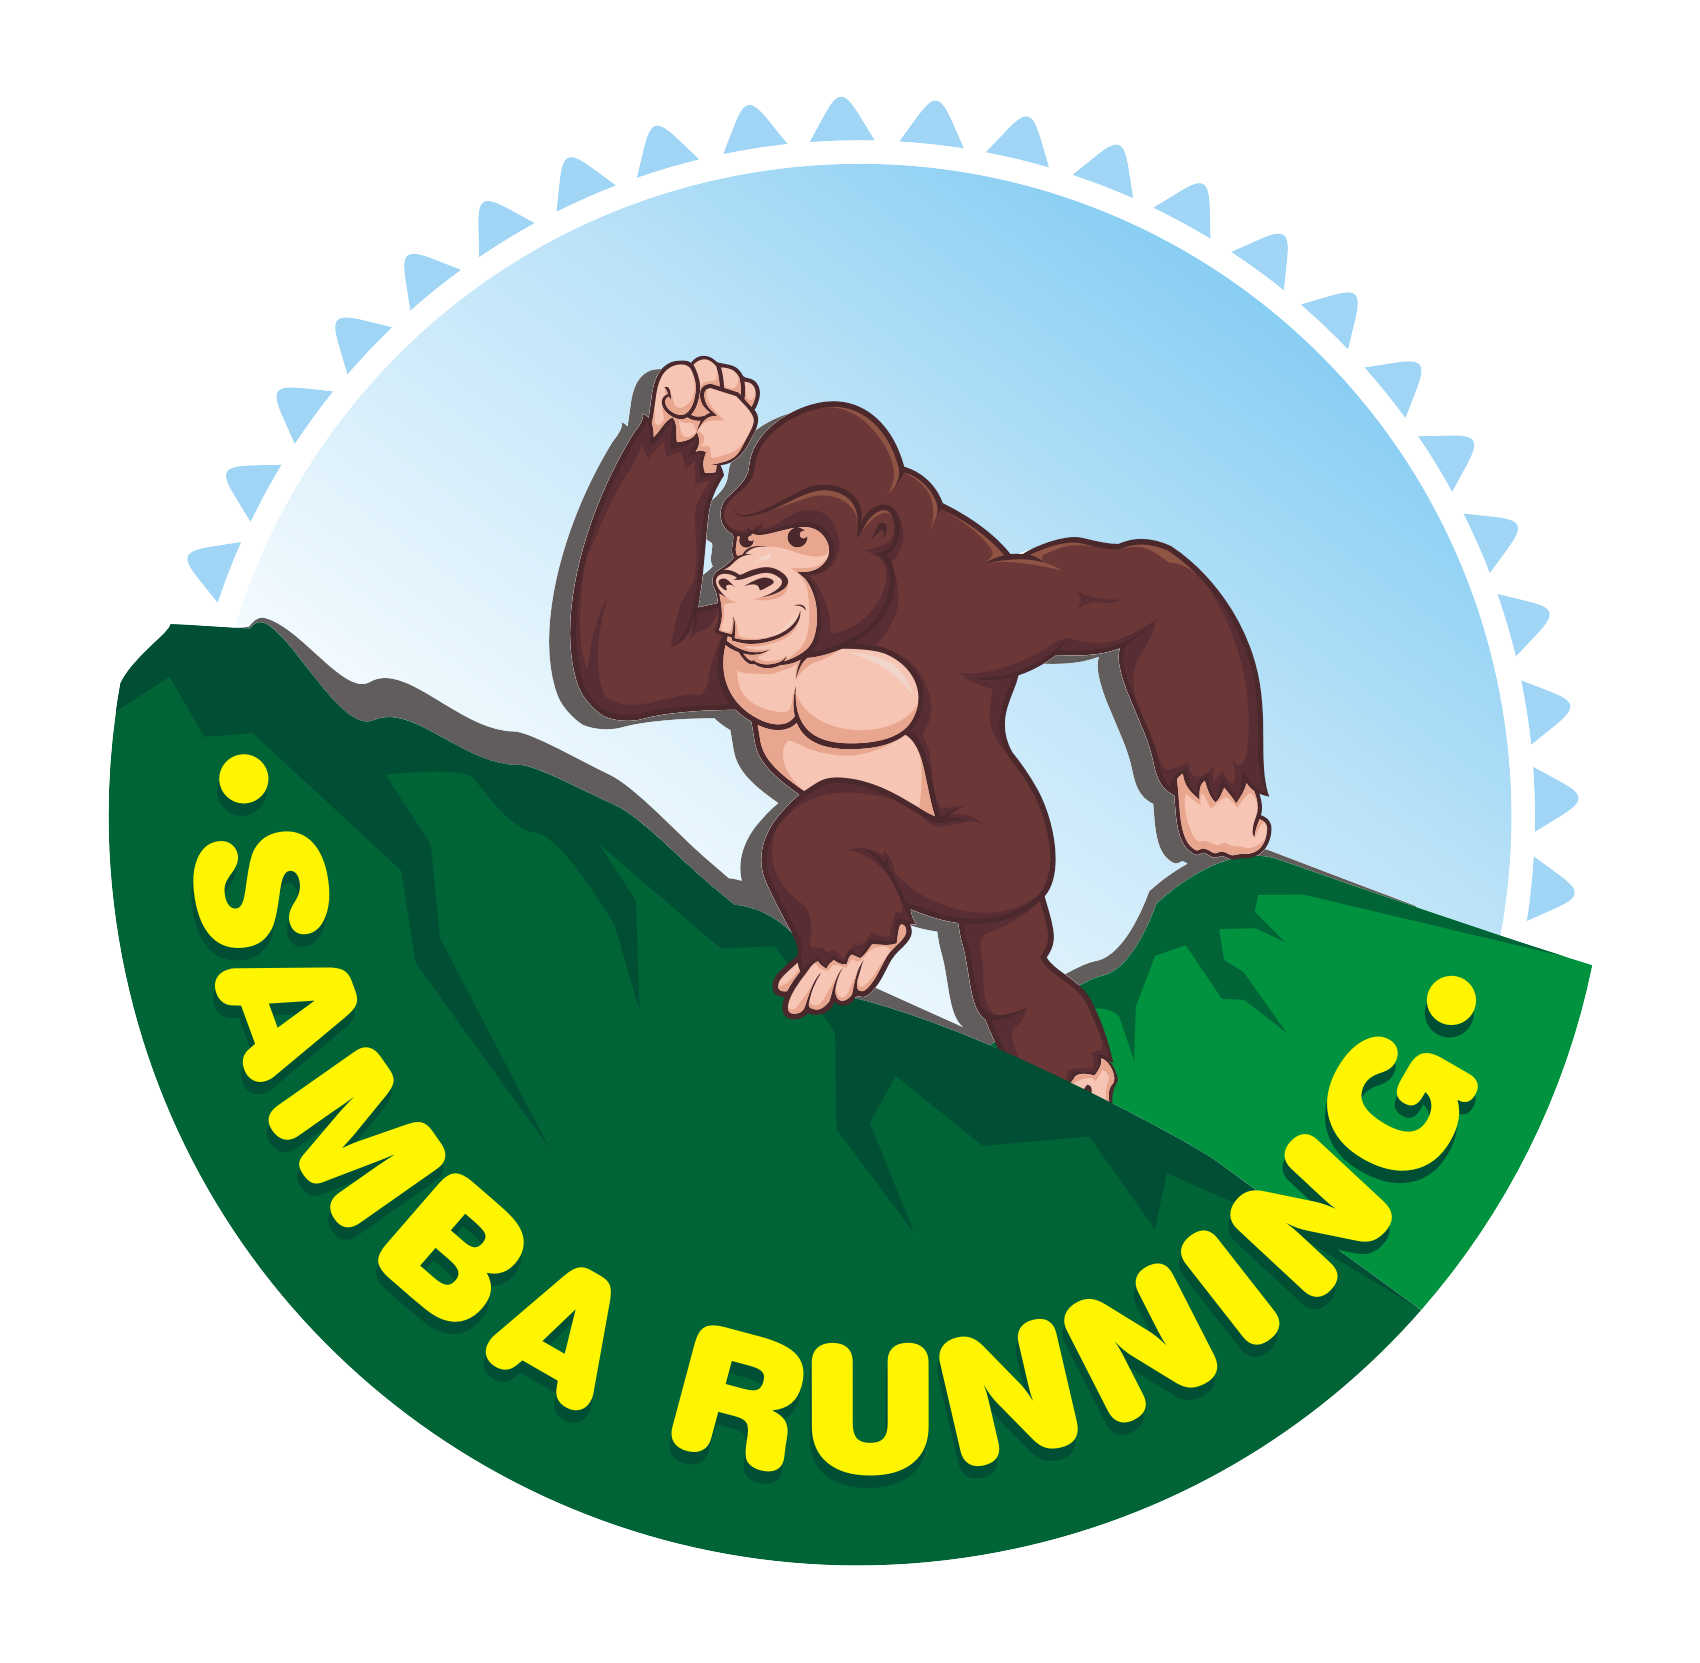 Samba Trail Running Club